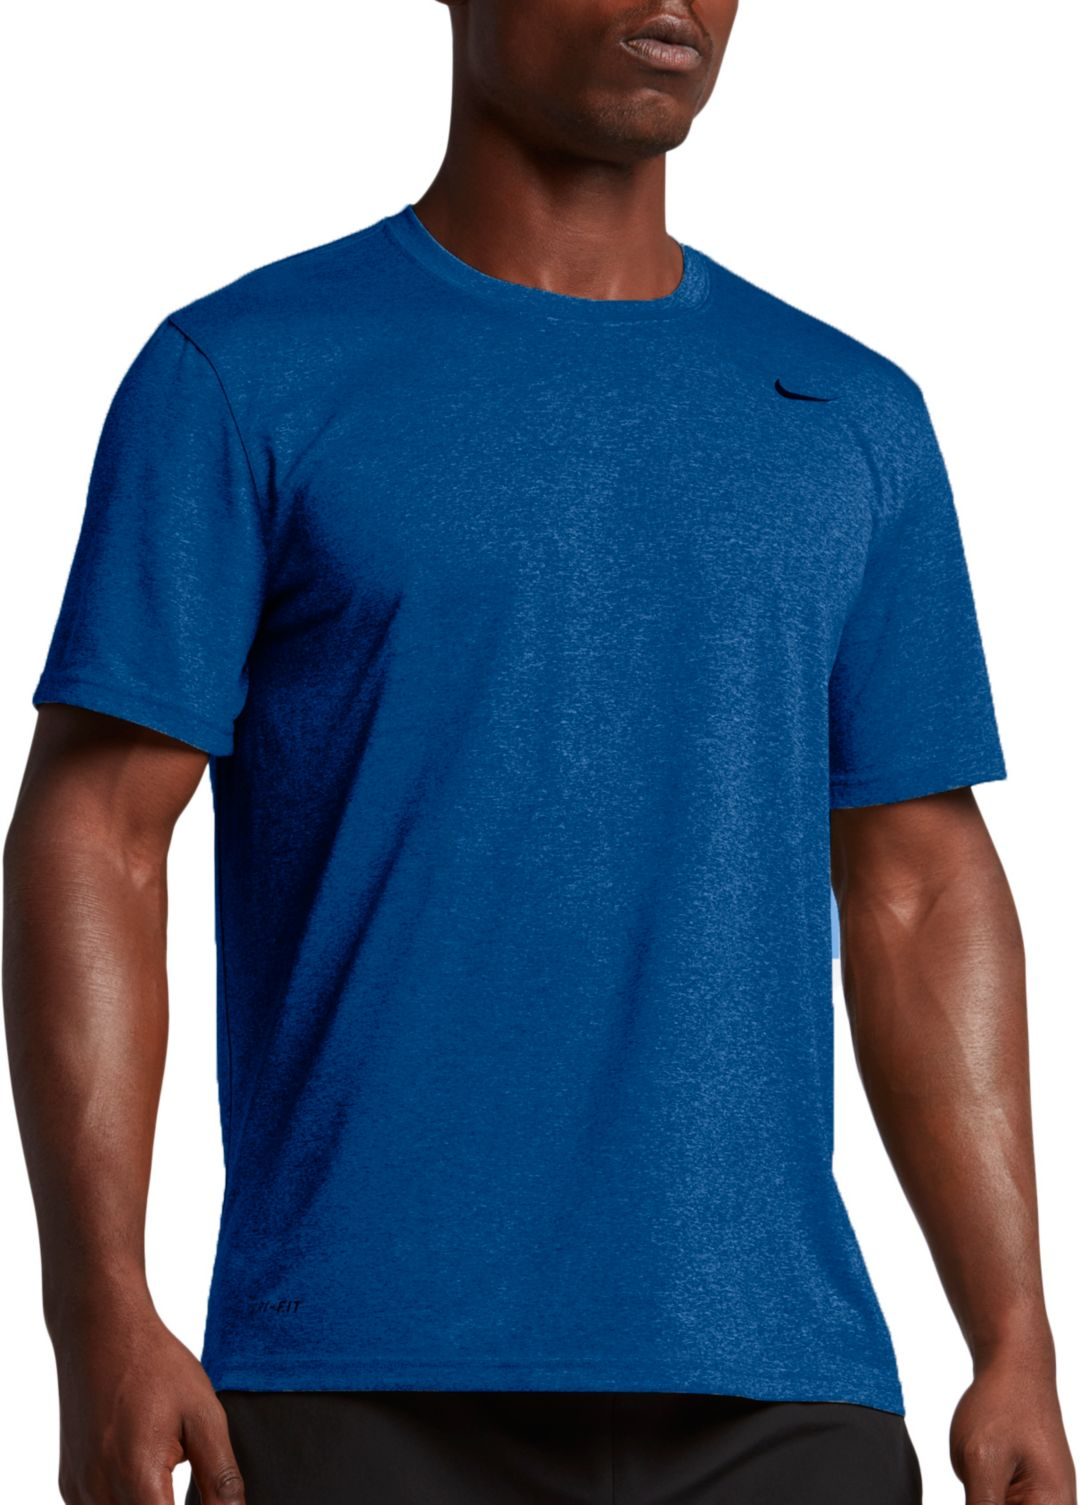 d0fcd0d89 Nike Men's Legend 2.0 T-Shirt | DICK'S Sporting Goods